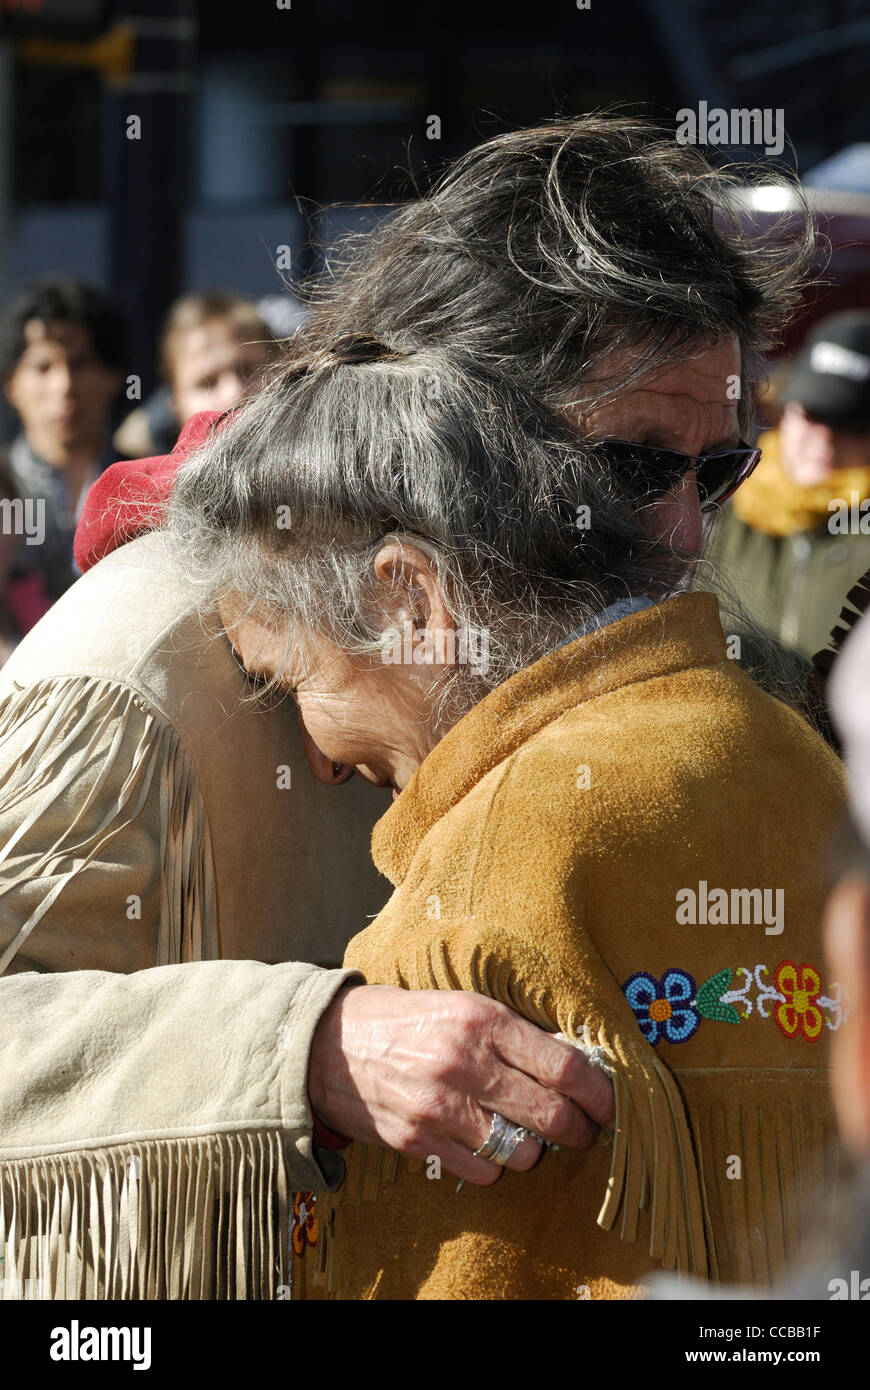 First Nations elders embracing each other. - Stock Image